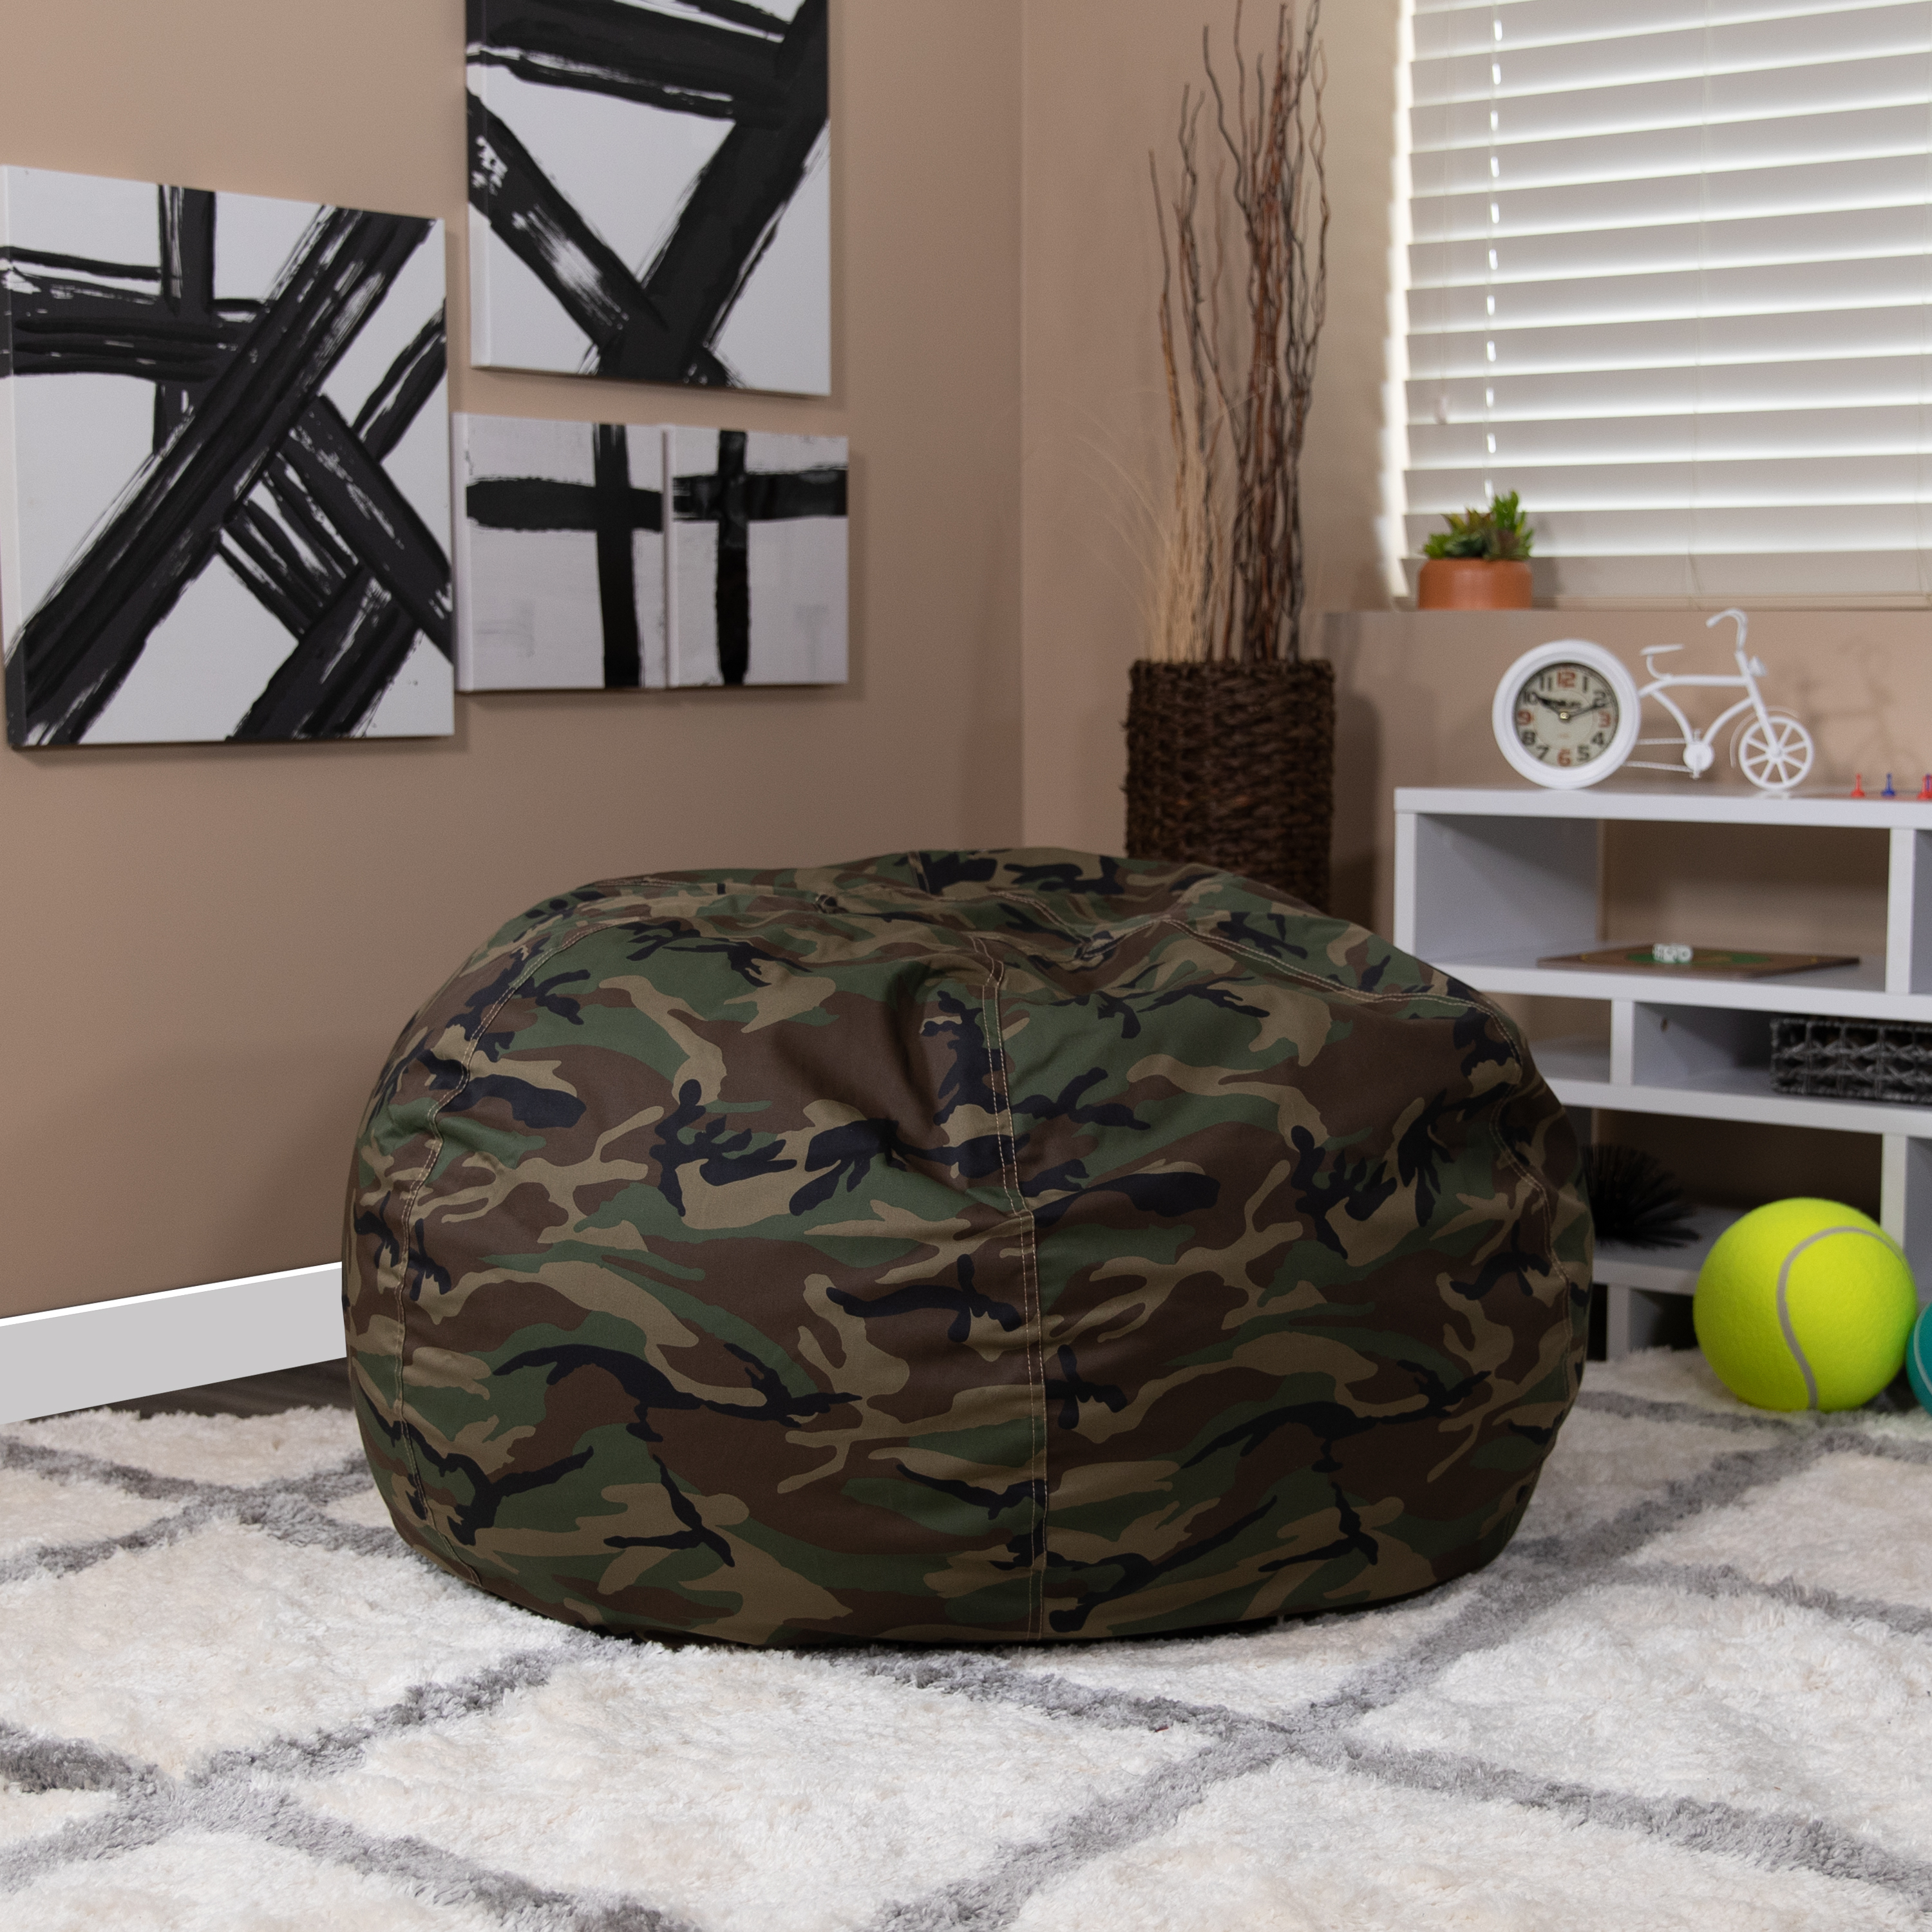 Groovy Oversized Bean Bag Chair For Kids And Adults Caraccident5 Cool Chair Designs And Ideas Caraccident5Info